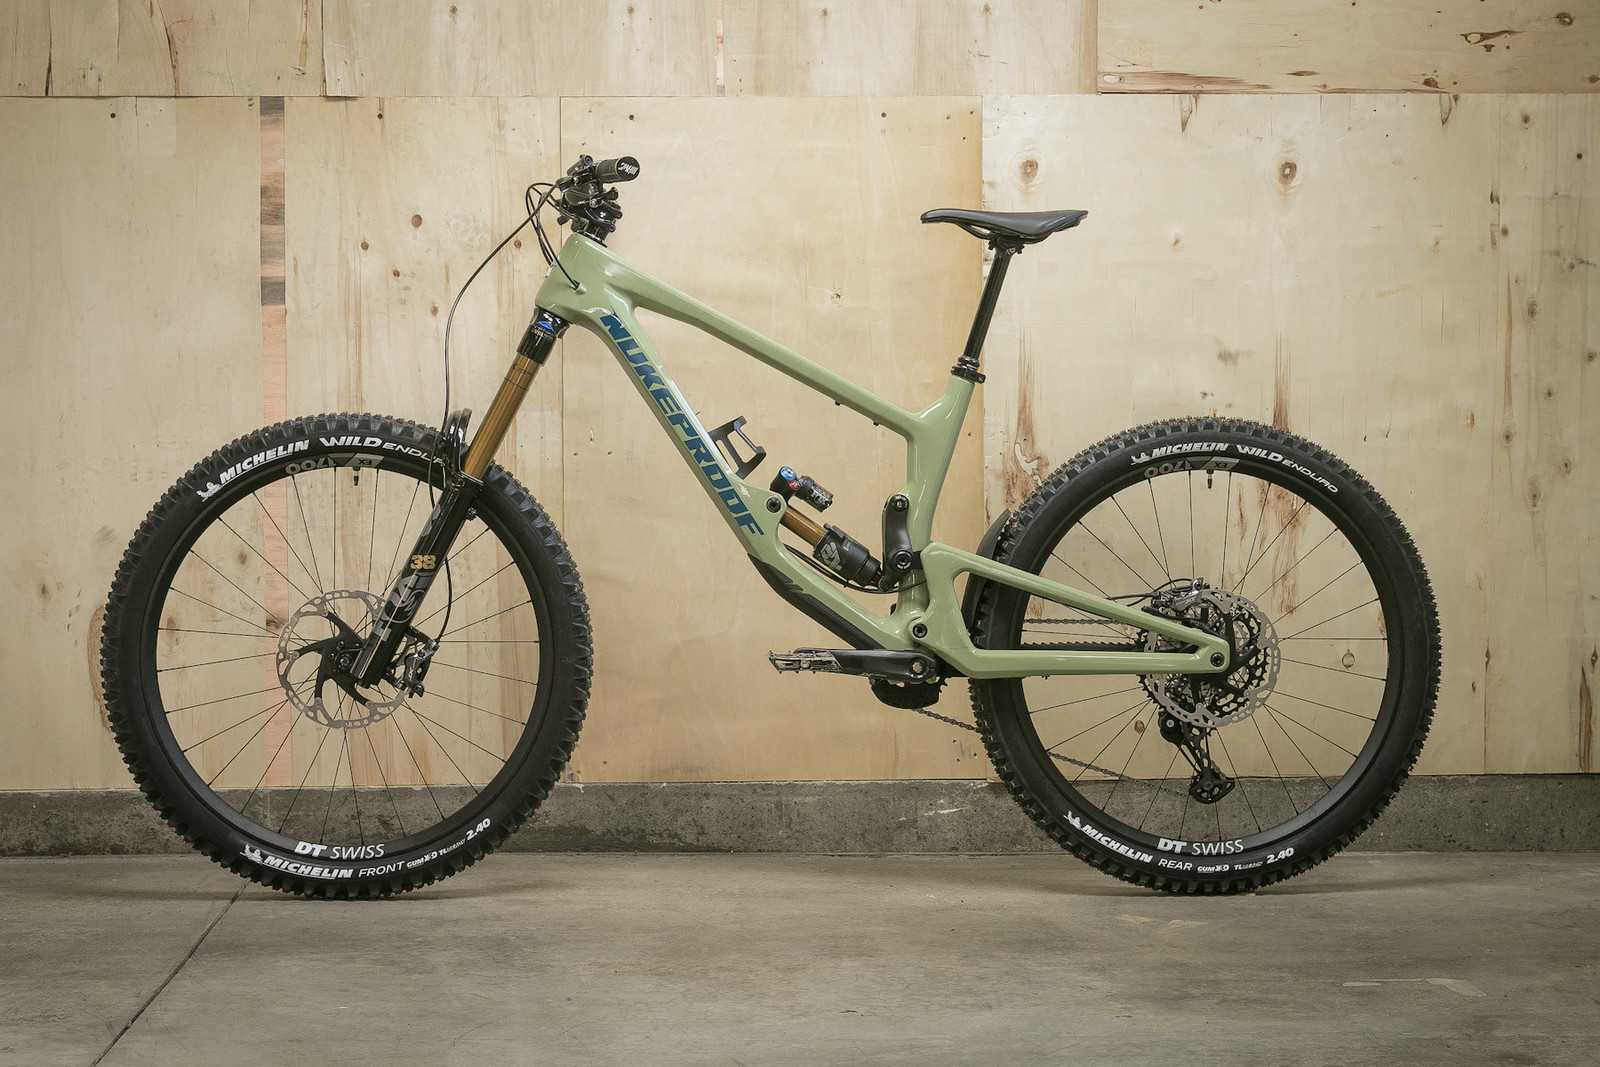 2021 Nukeproof Giga Factory (size large) $5,499